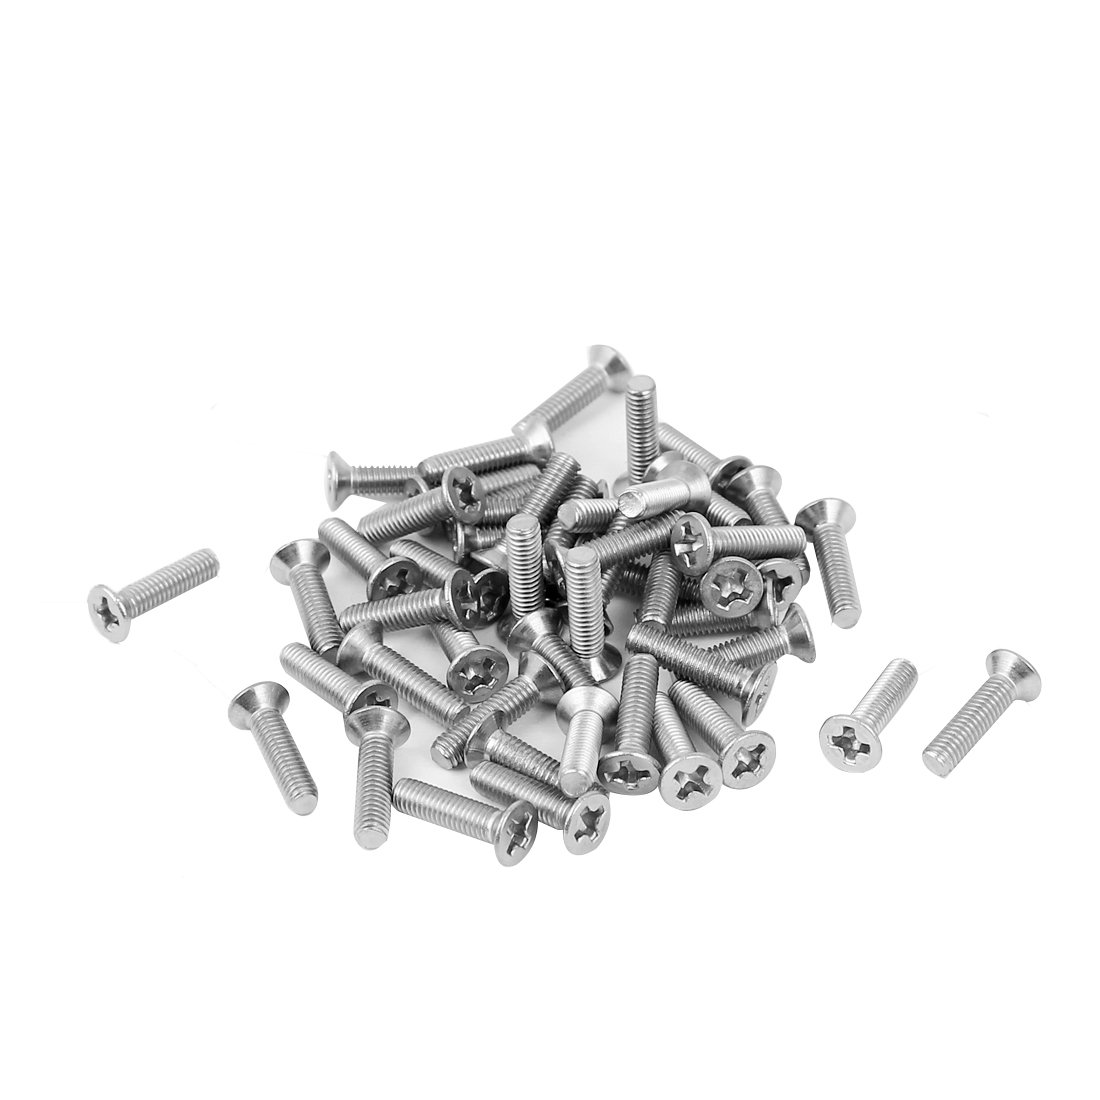 M3x12mm 304 Stainless Steel Phillips Flat Countersunk Head Screws 50pcs